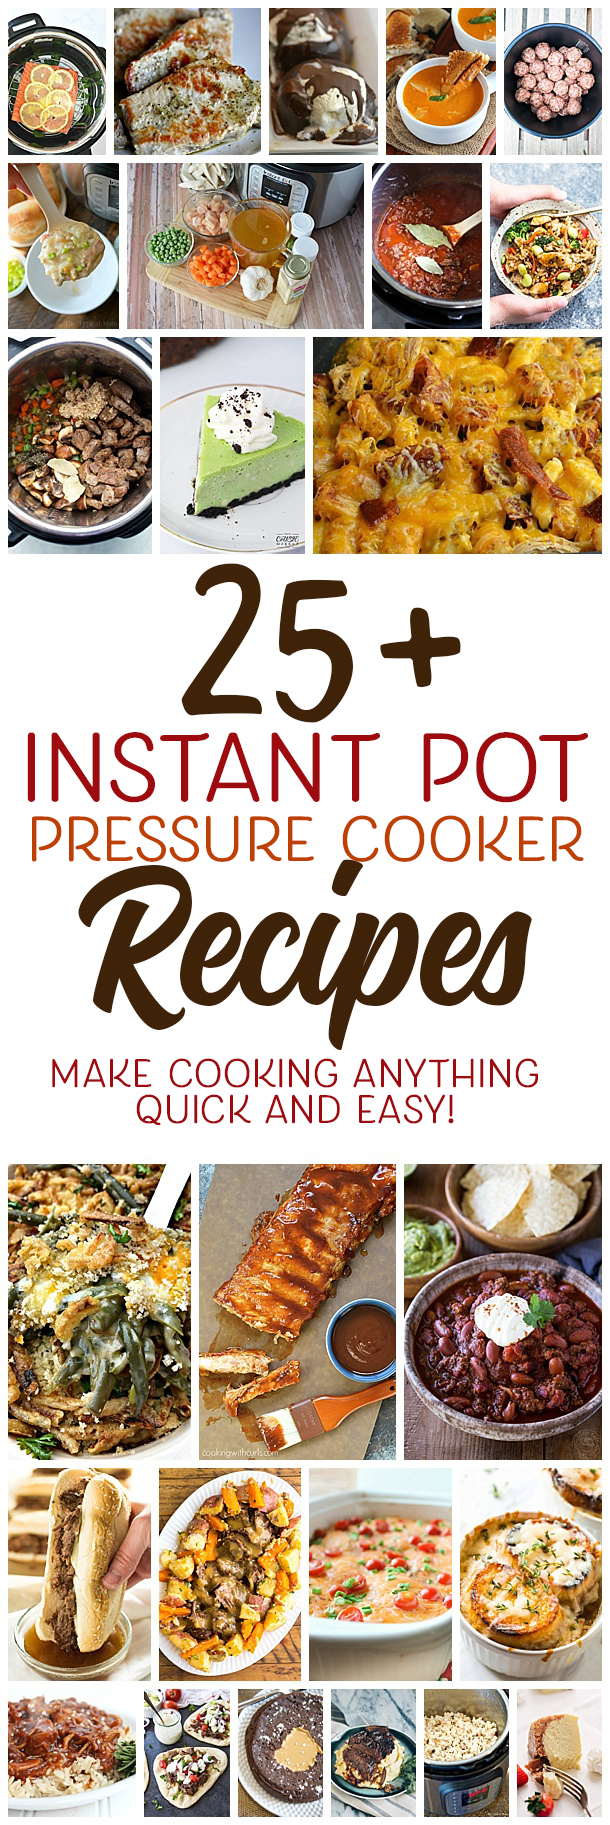 Brisket In Pressure Cooker 25+ Most Amazing Pressure Cooker Recipes for Your Instant ...